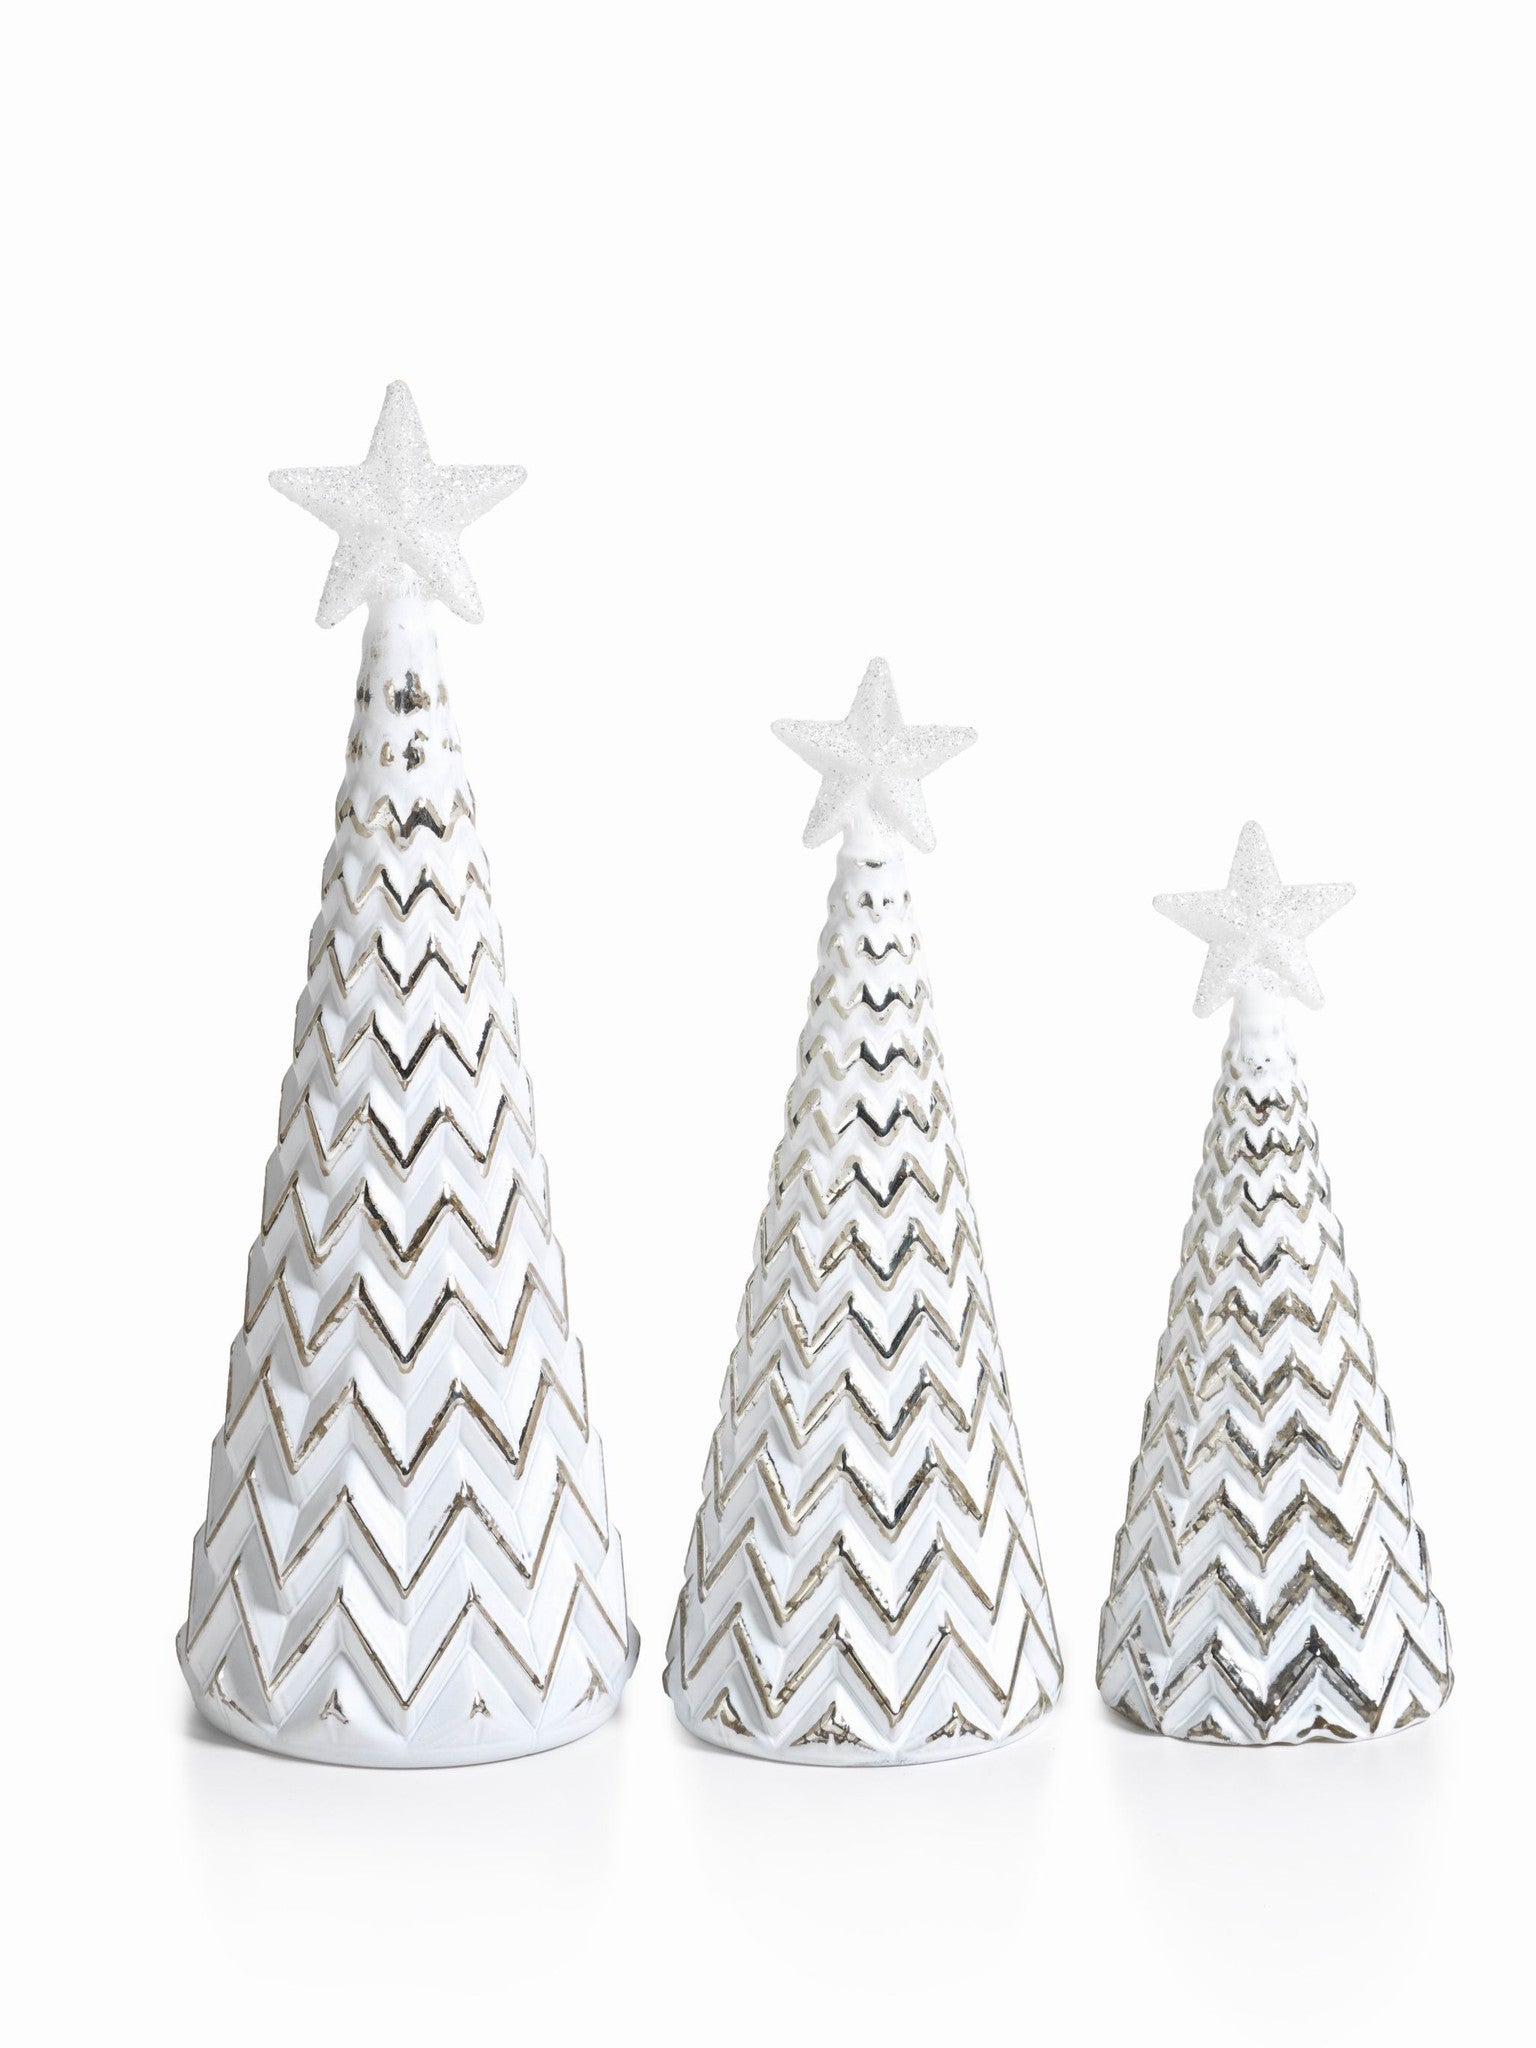 LED Glass Decorative Tree - Silver - Set of 6 -  - CARLYLE AVENUE - 6